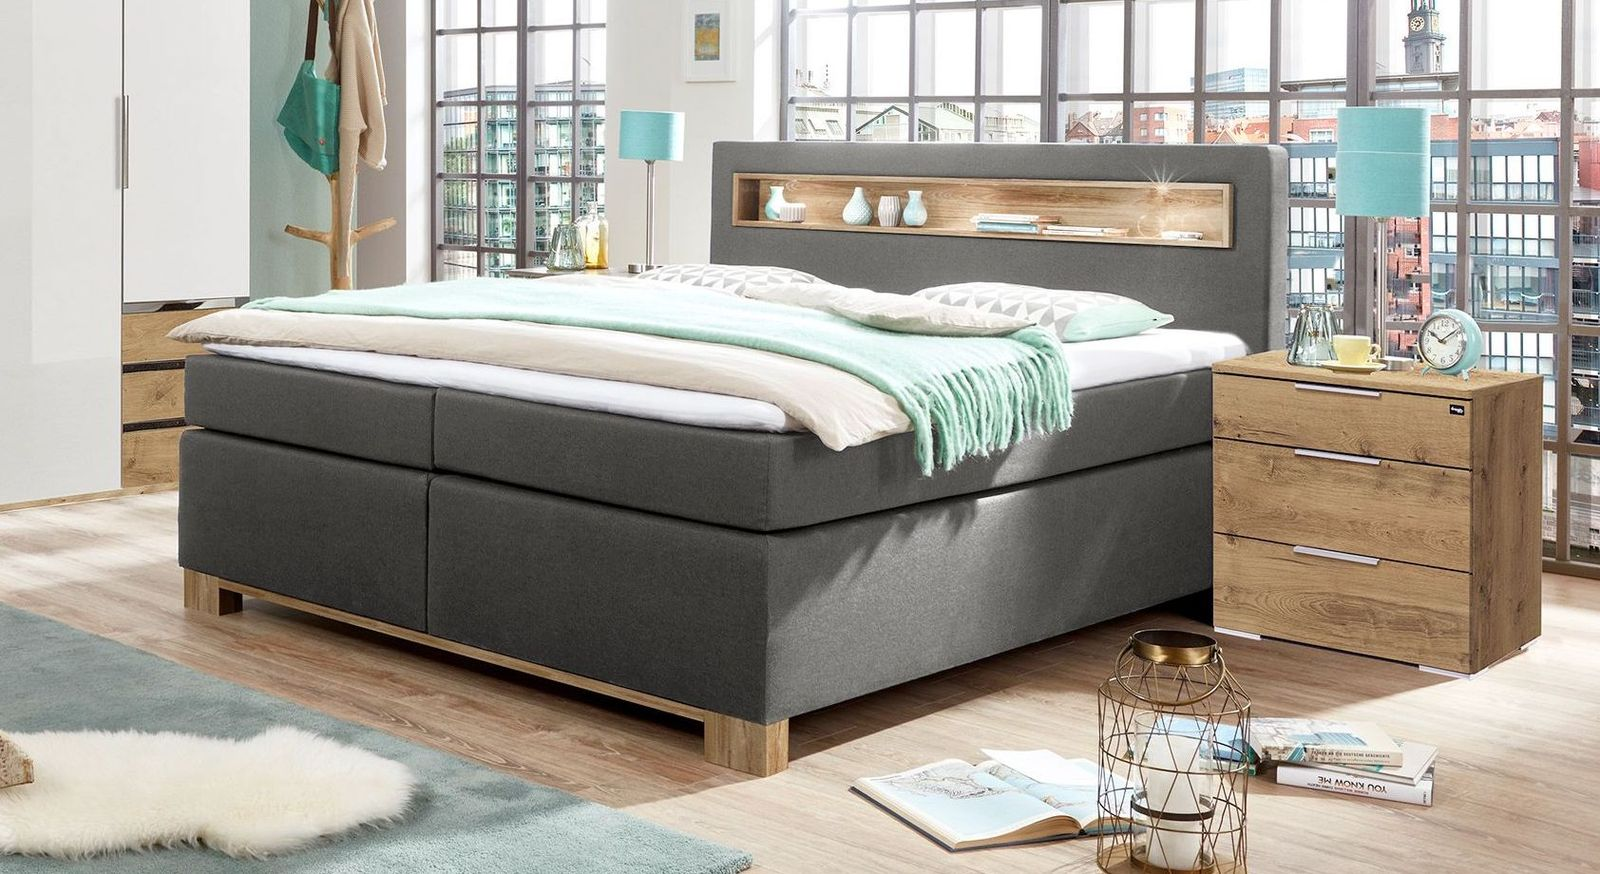 Boxspringbett Valloria mit robustem Stoffbezug in Anthrazit